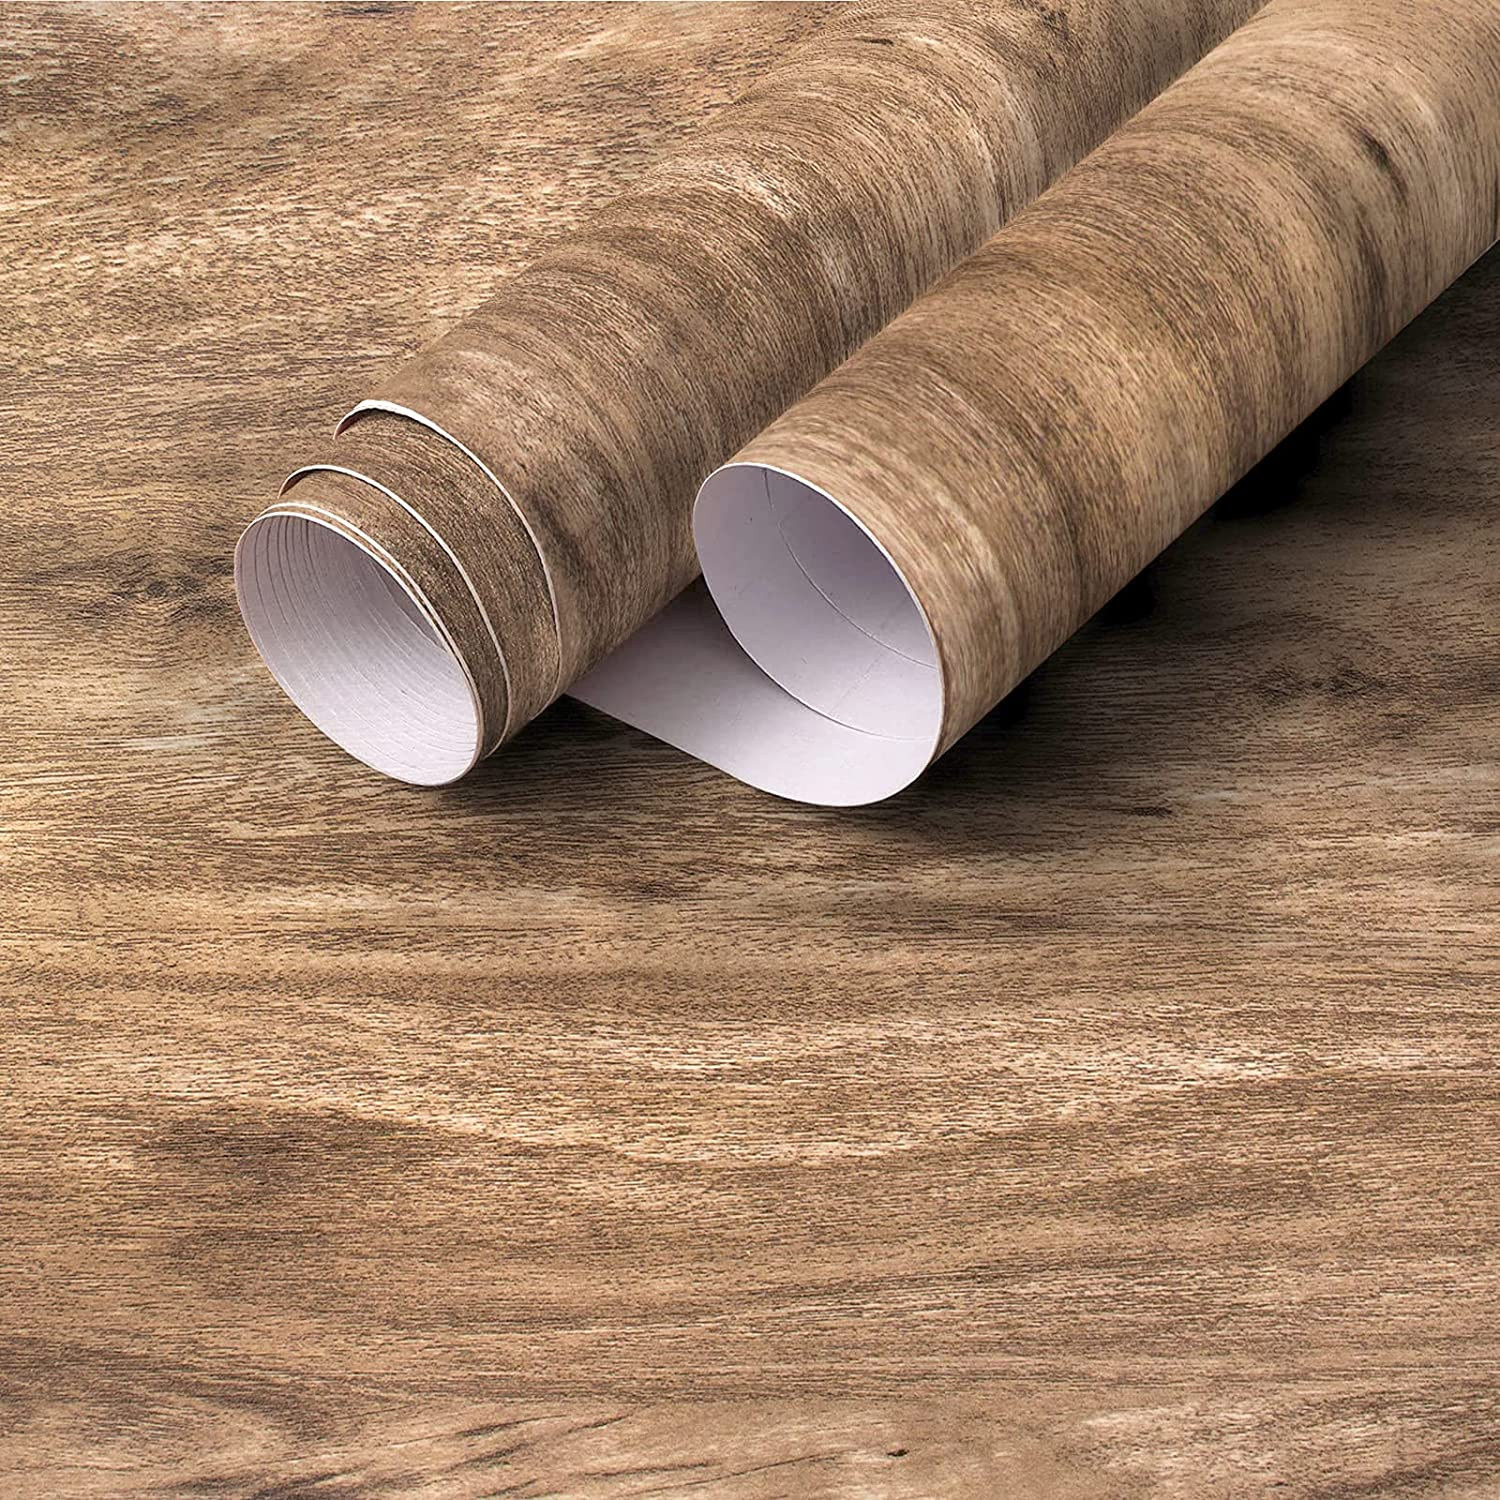 70% OFF Outlet Financial sales sale Wood Contact Paper Wallpaper Stick and Peel